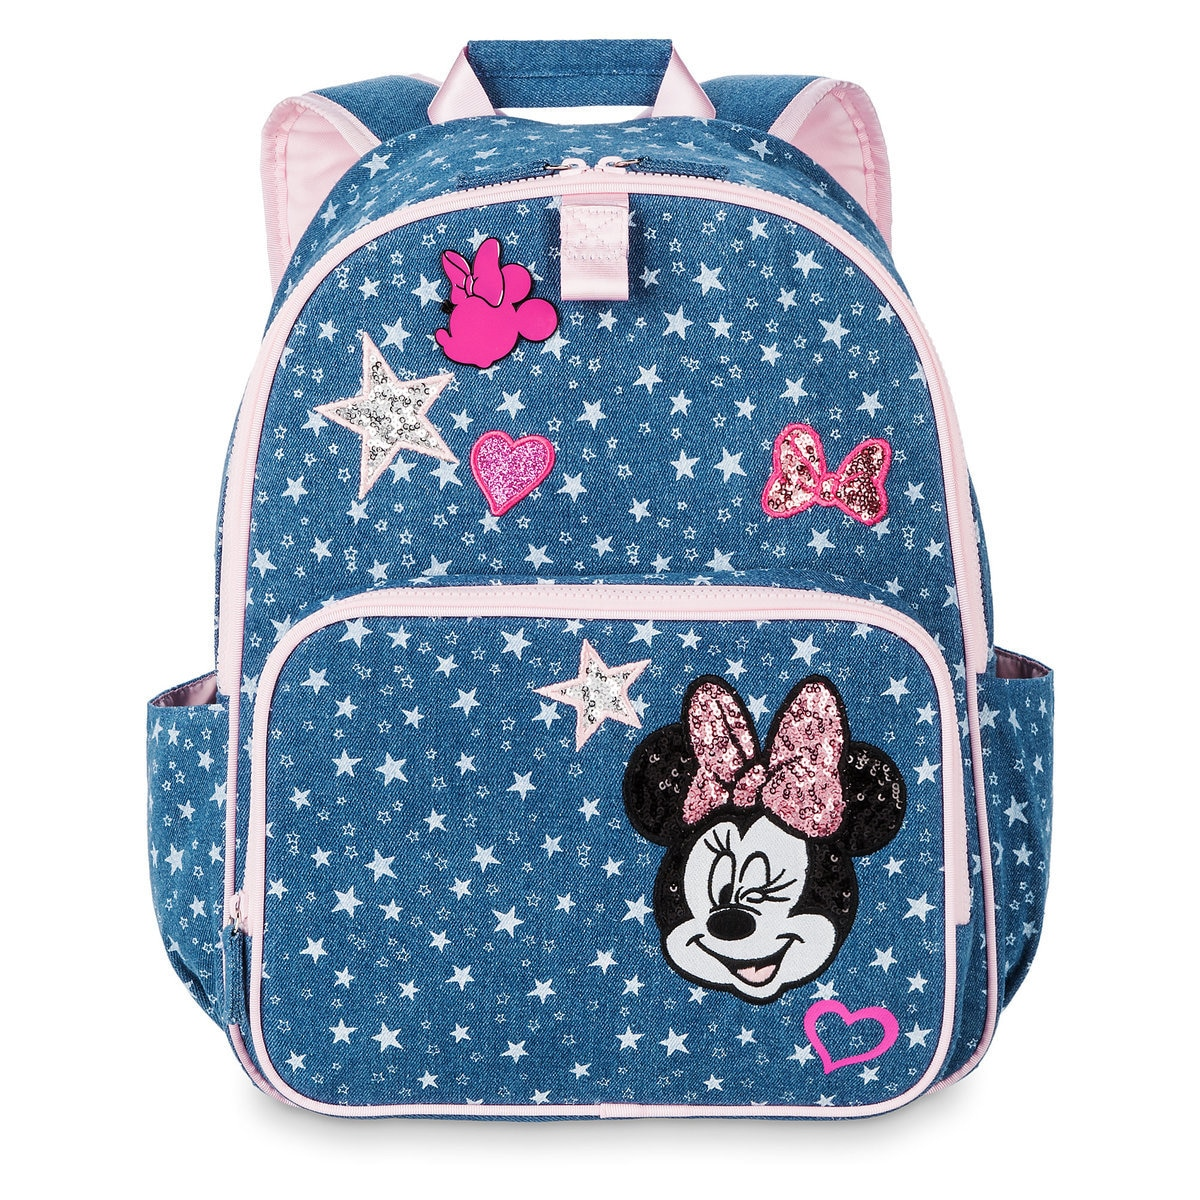 c10a597ac1a Product Image of Minnie Mouse Denim Backpack for Kids - Personalized   1